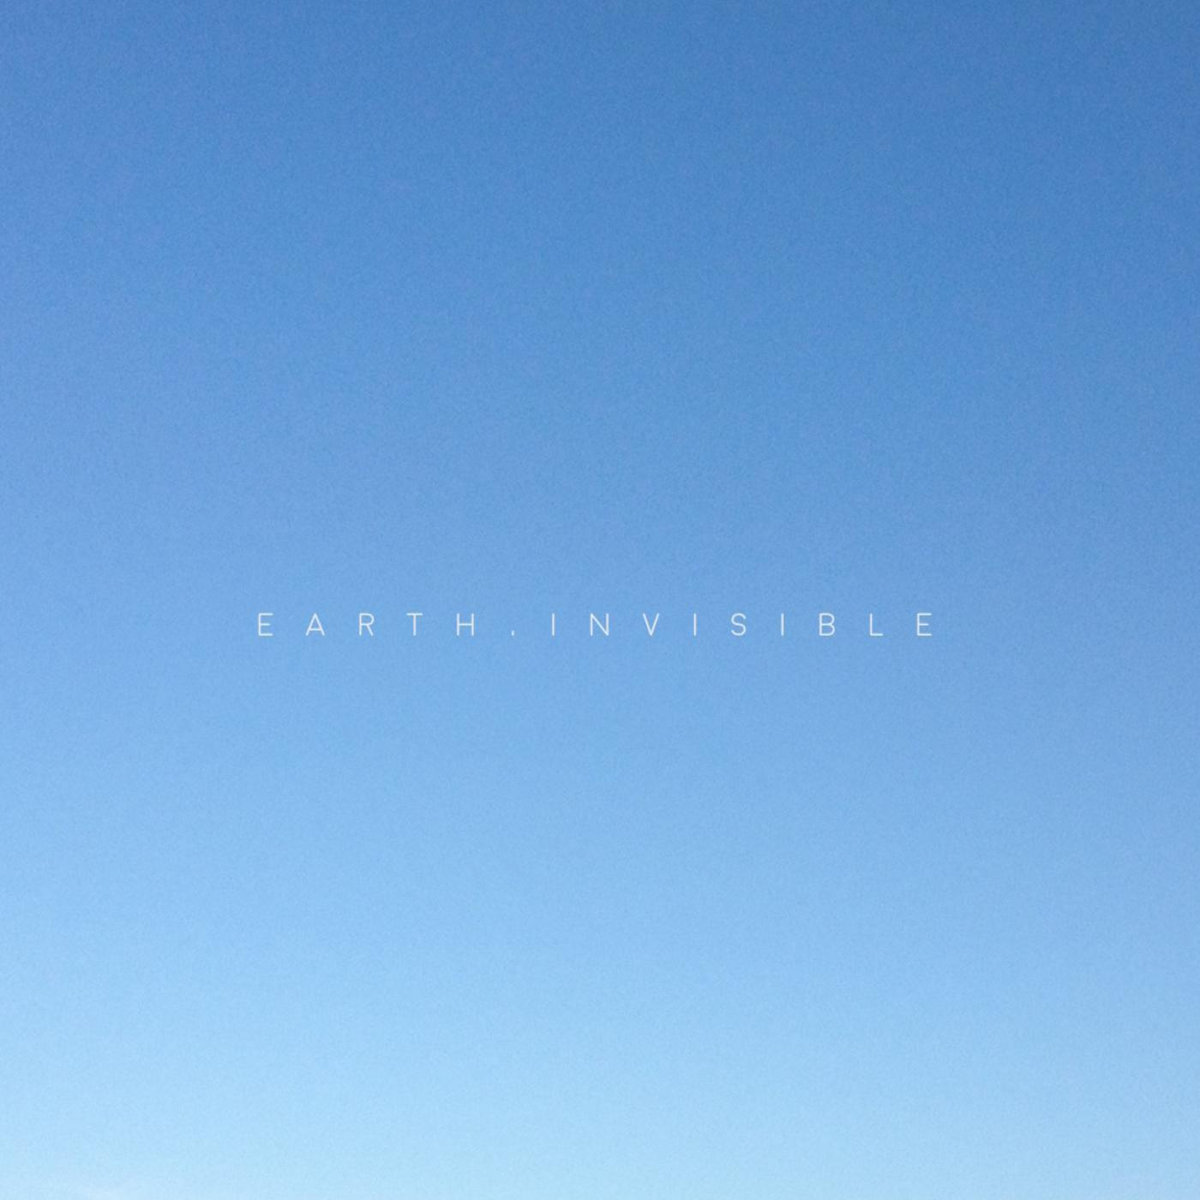 earth invisible earth invisible